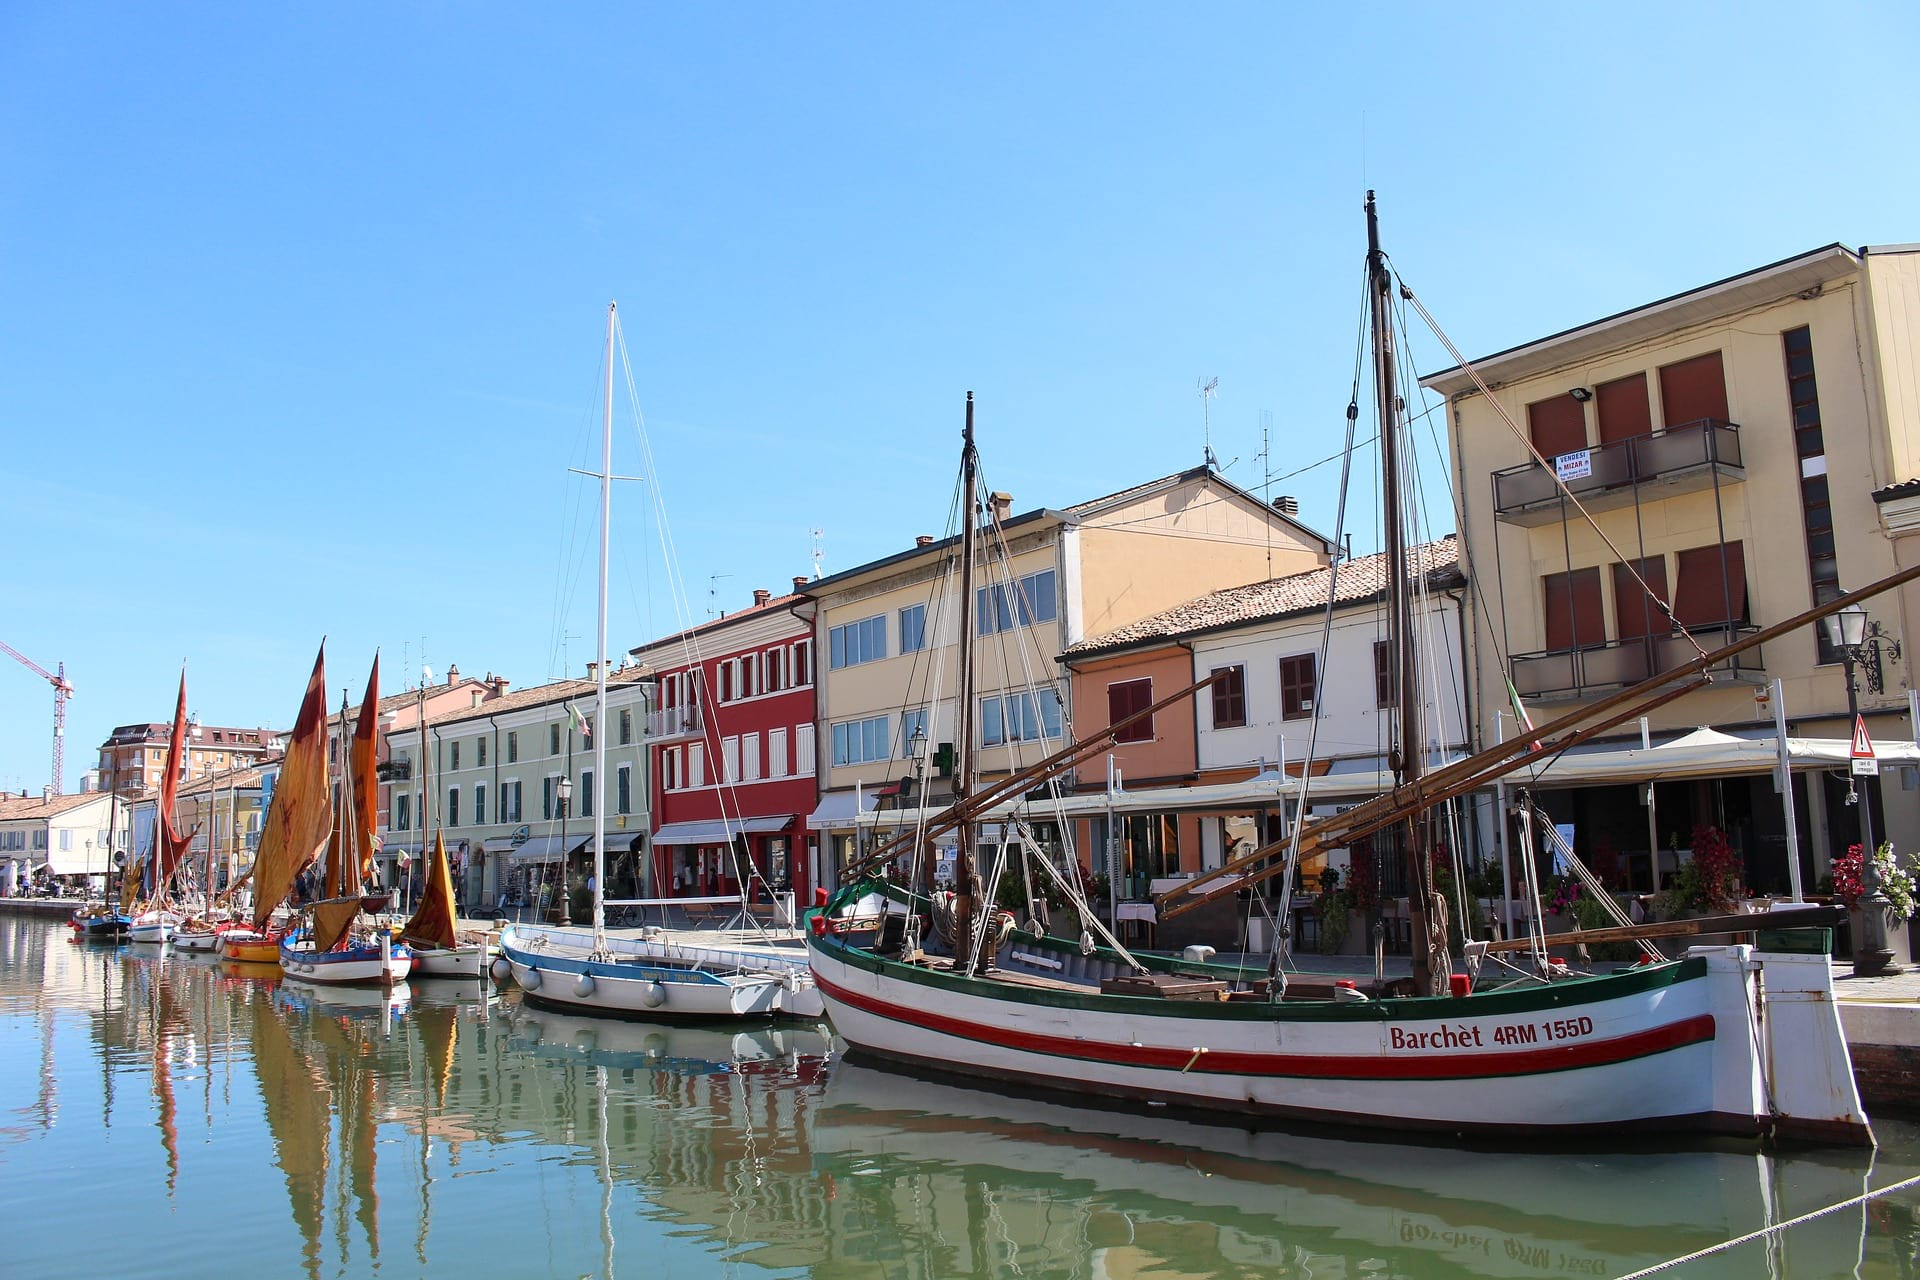 EMILIA ROMAGNA town and boats image